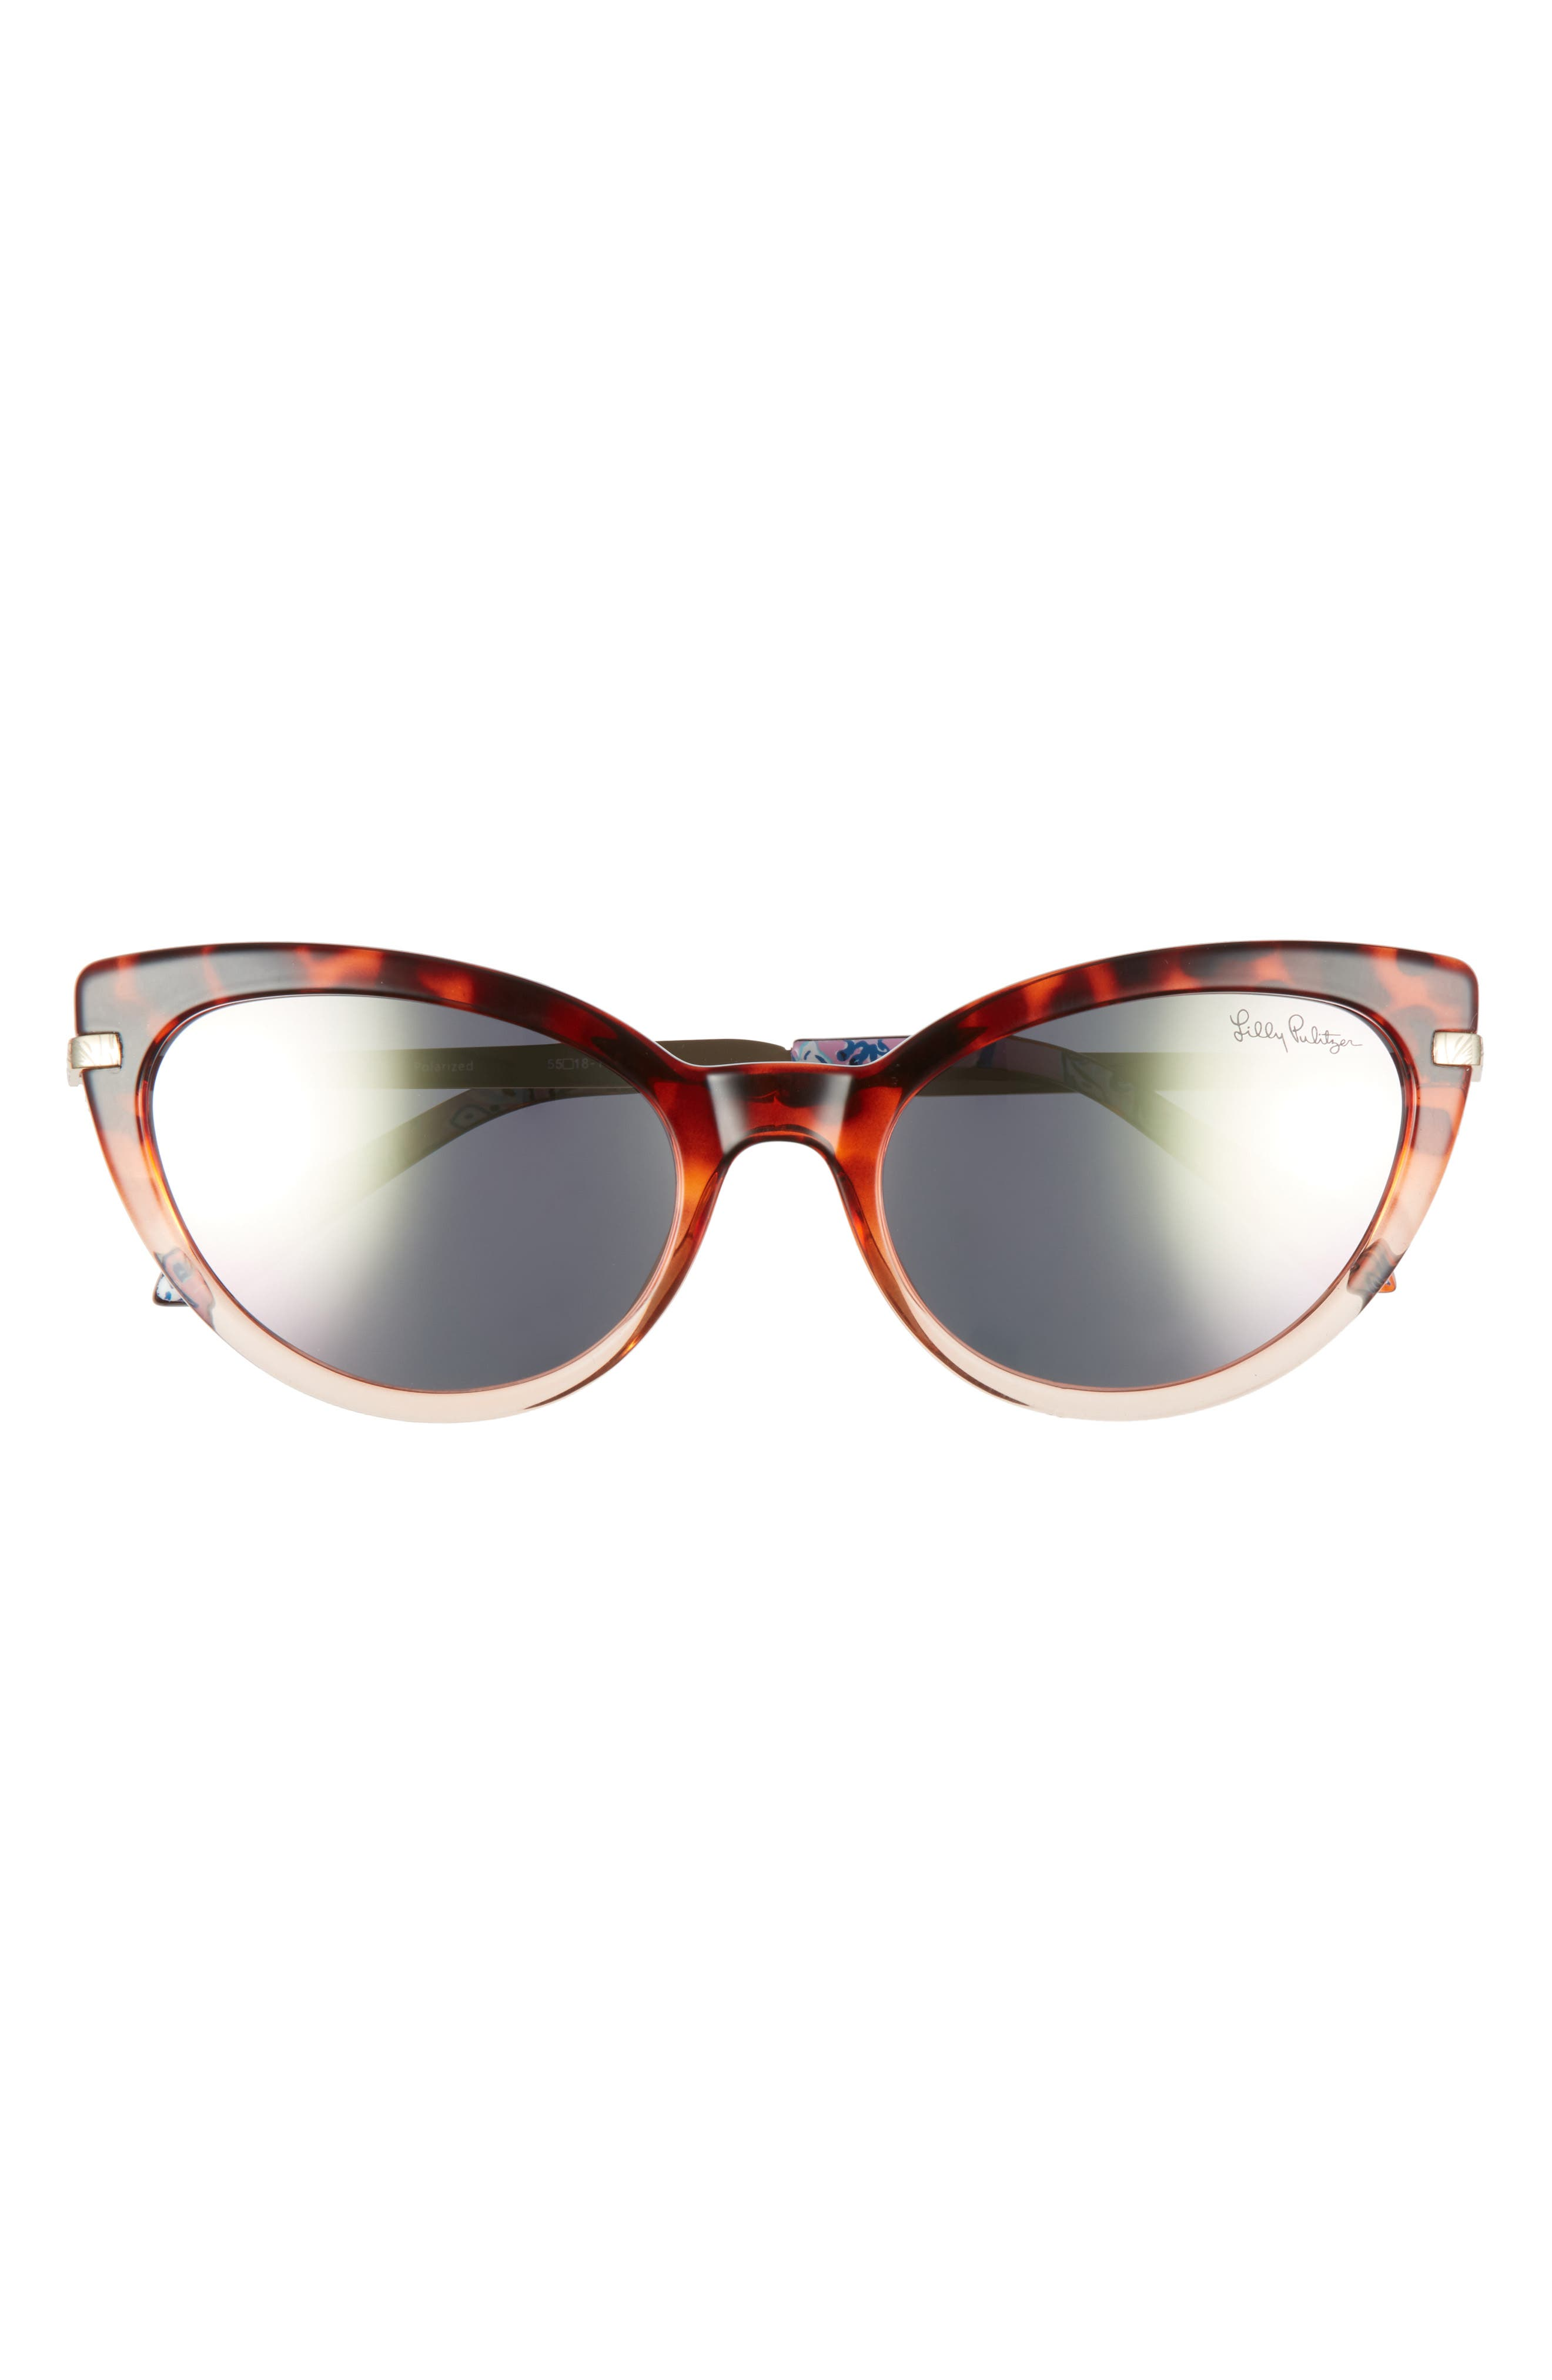 Etched patterns mark the temples of these bold cat-eye sunglasses fitted with glare-reducing polarized lenses. Style Name: Lilly Pulitzer Halona 55mm Polarized Cat Eye Sunglasses. Style Number: 6104393. Available in stores.